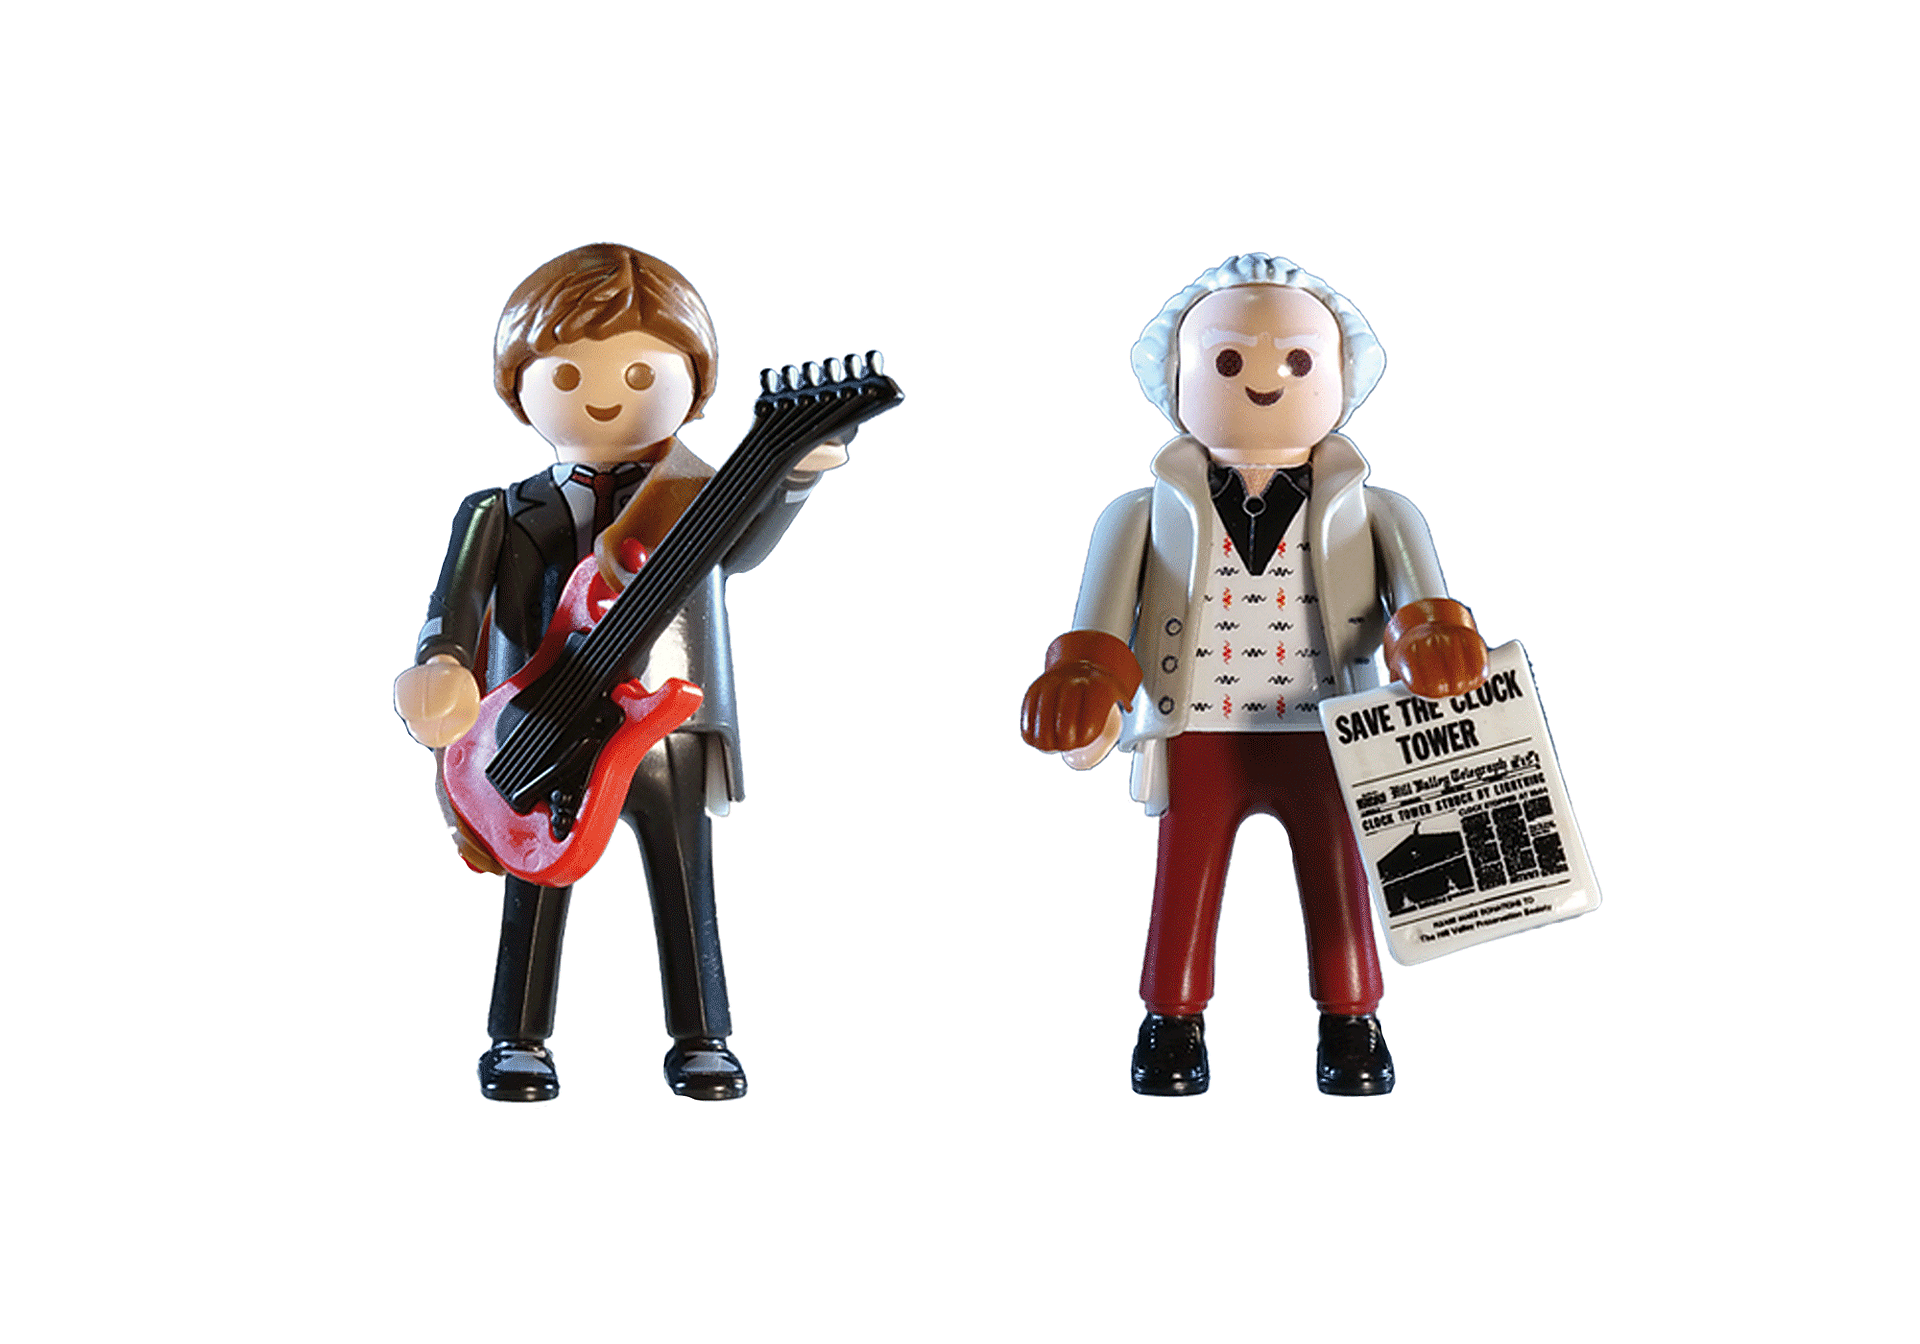 70459 Back to the Future Marty McFly und Dr. Emmett Brown zoom image4